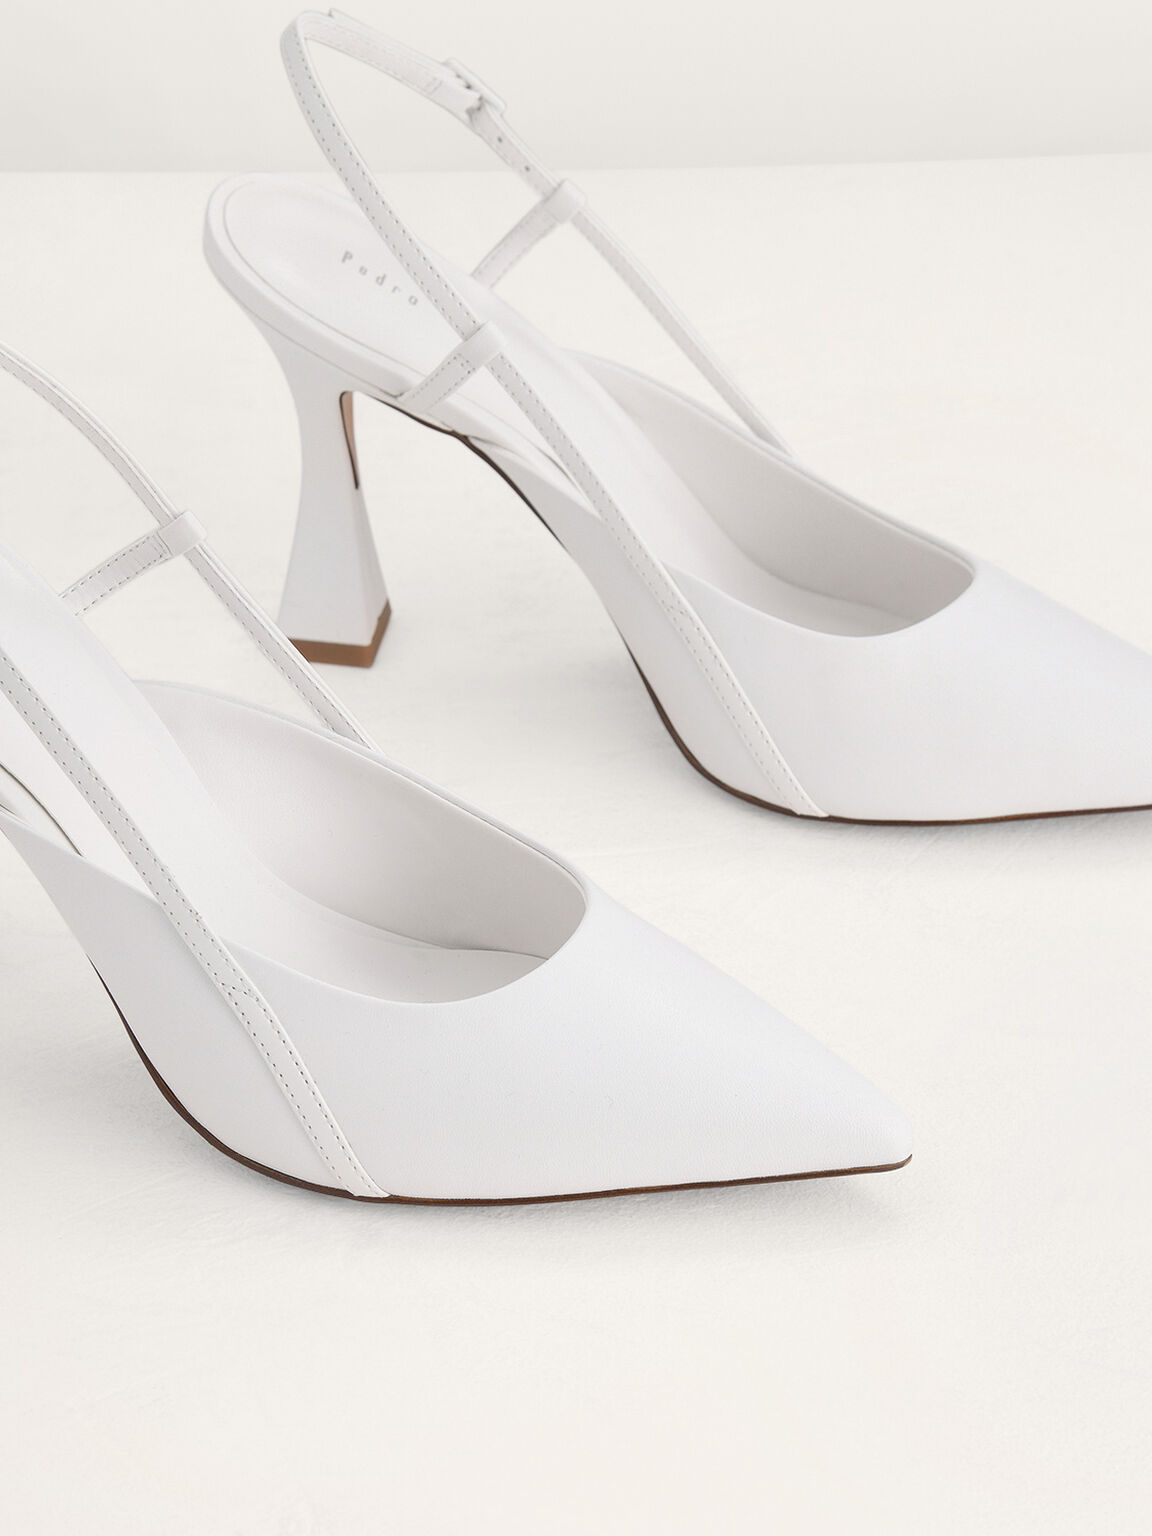 Leather Slingback Pumps, White, hi-res